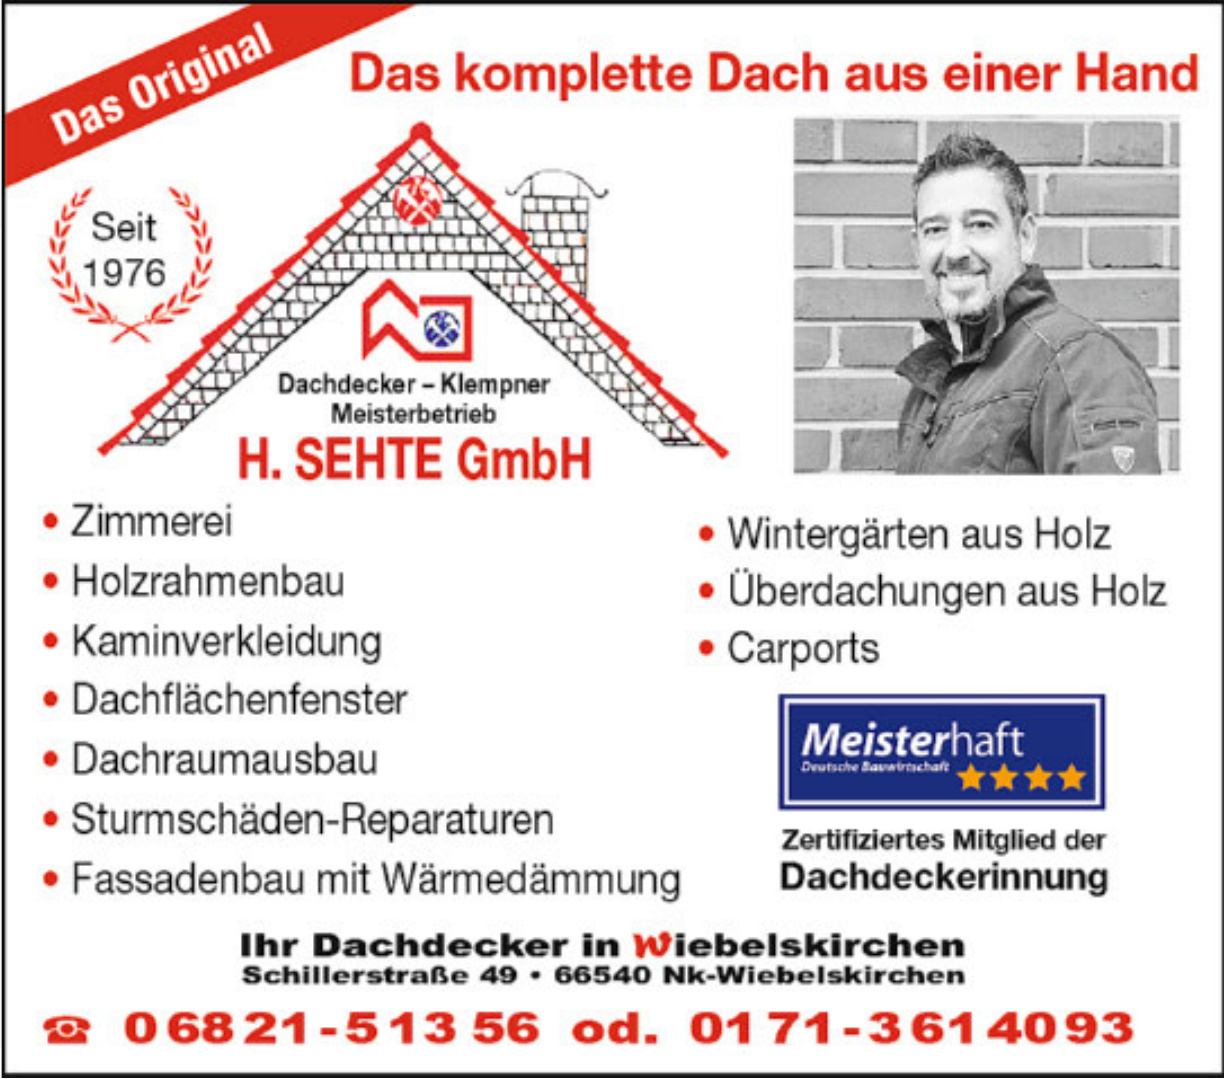 H. Sehte GmbH